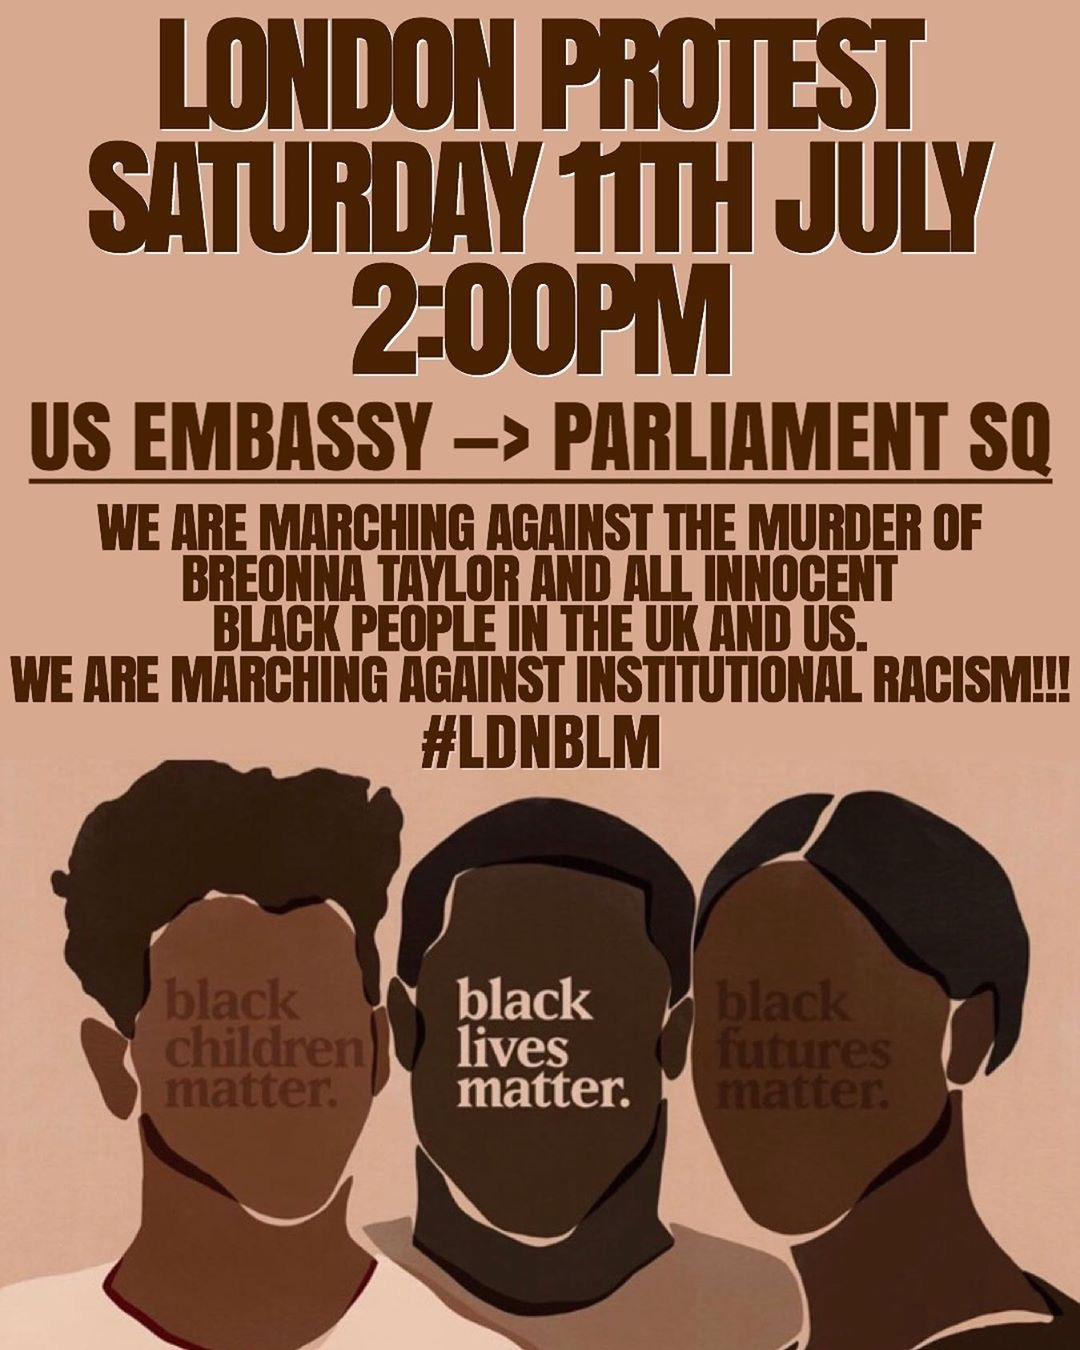 BLM London protest for Breonna Taylor and all the dead in the US and UK – 11th July US embassy